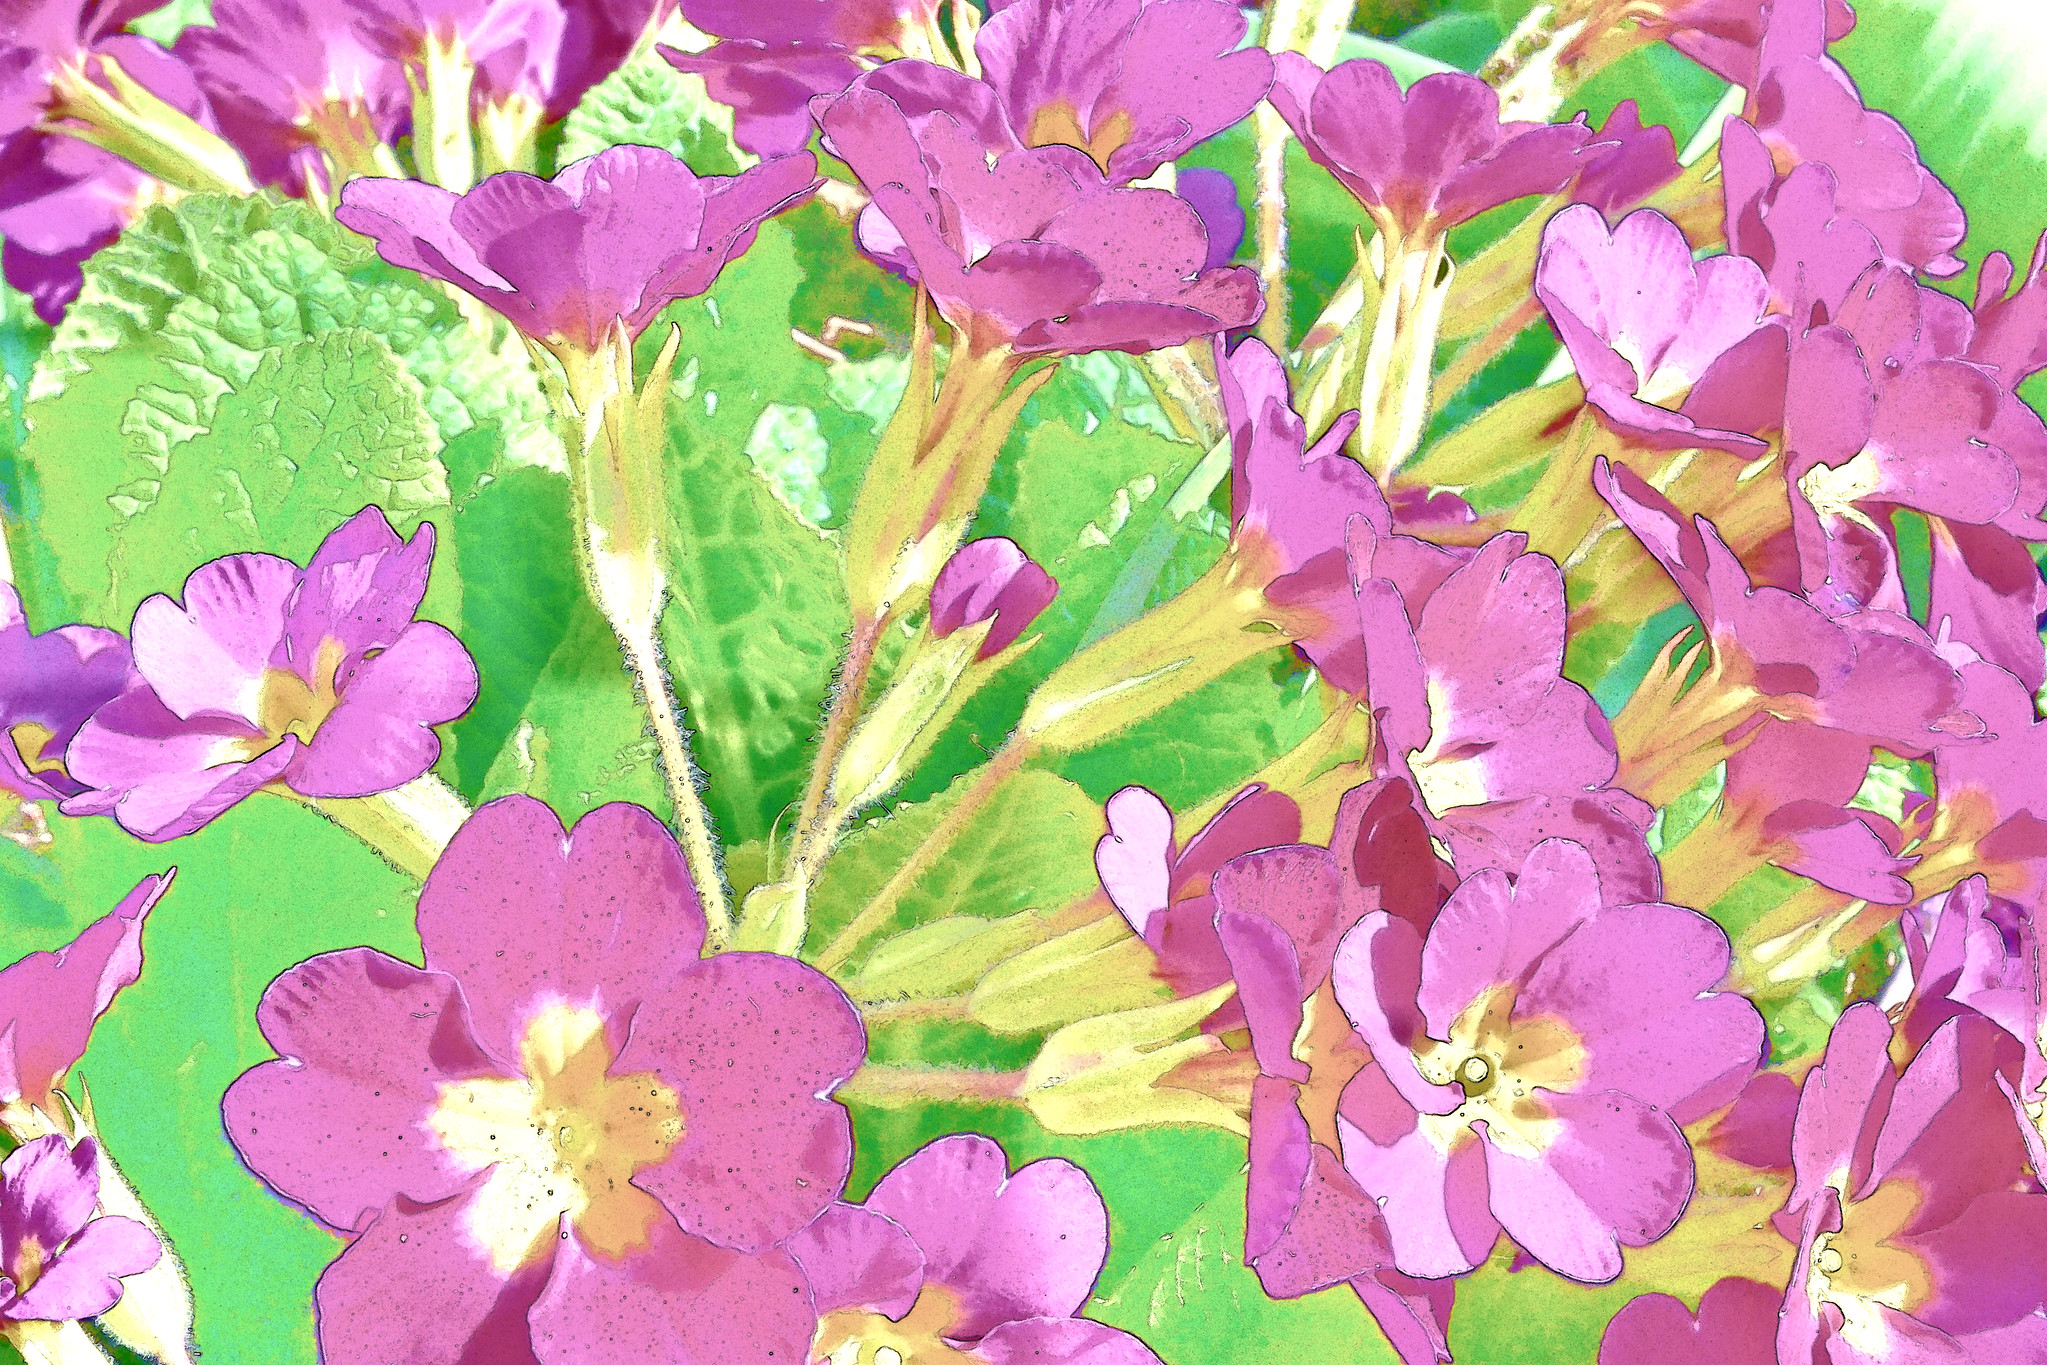 33849196861_abbd1e88fd_k Painting with primula